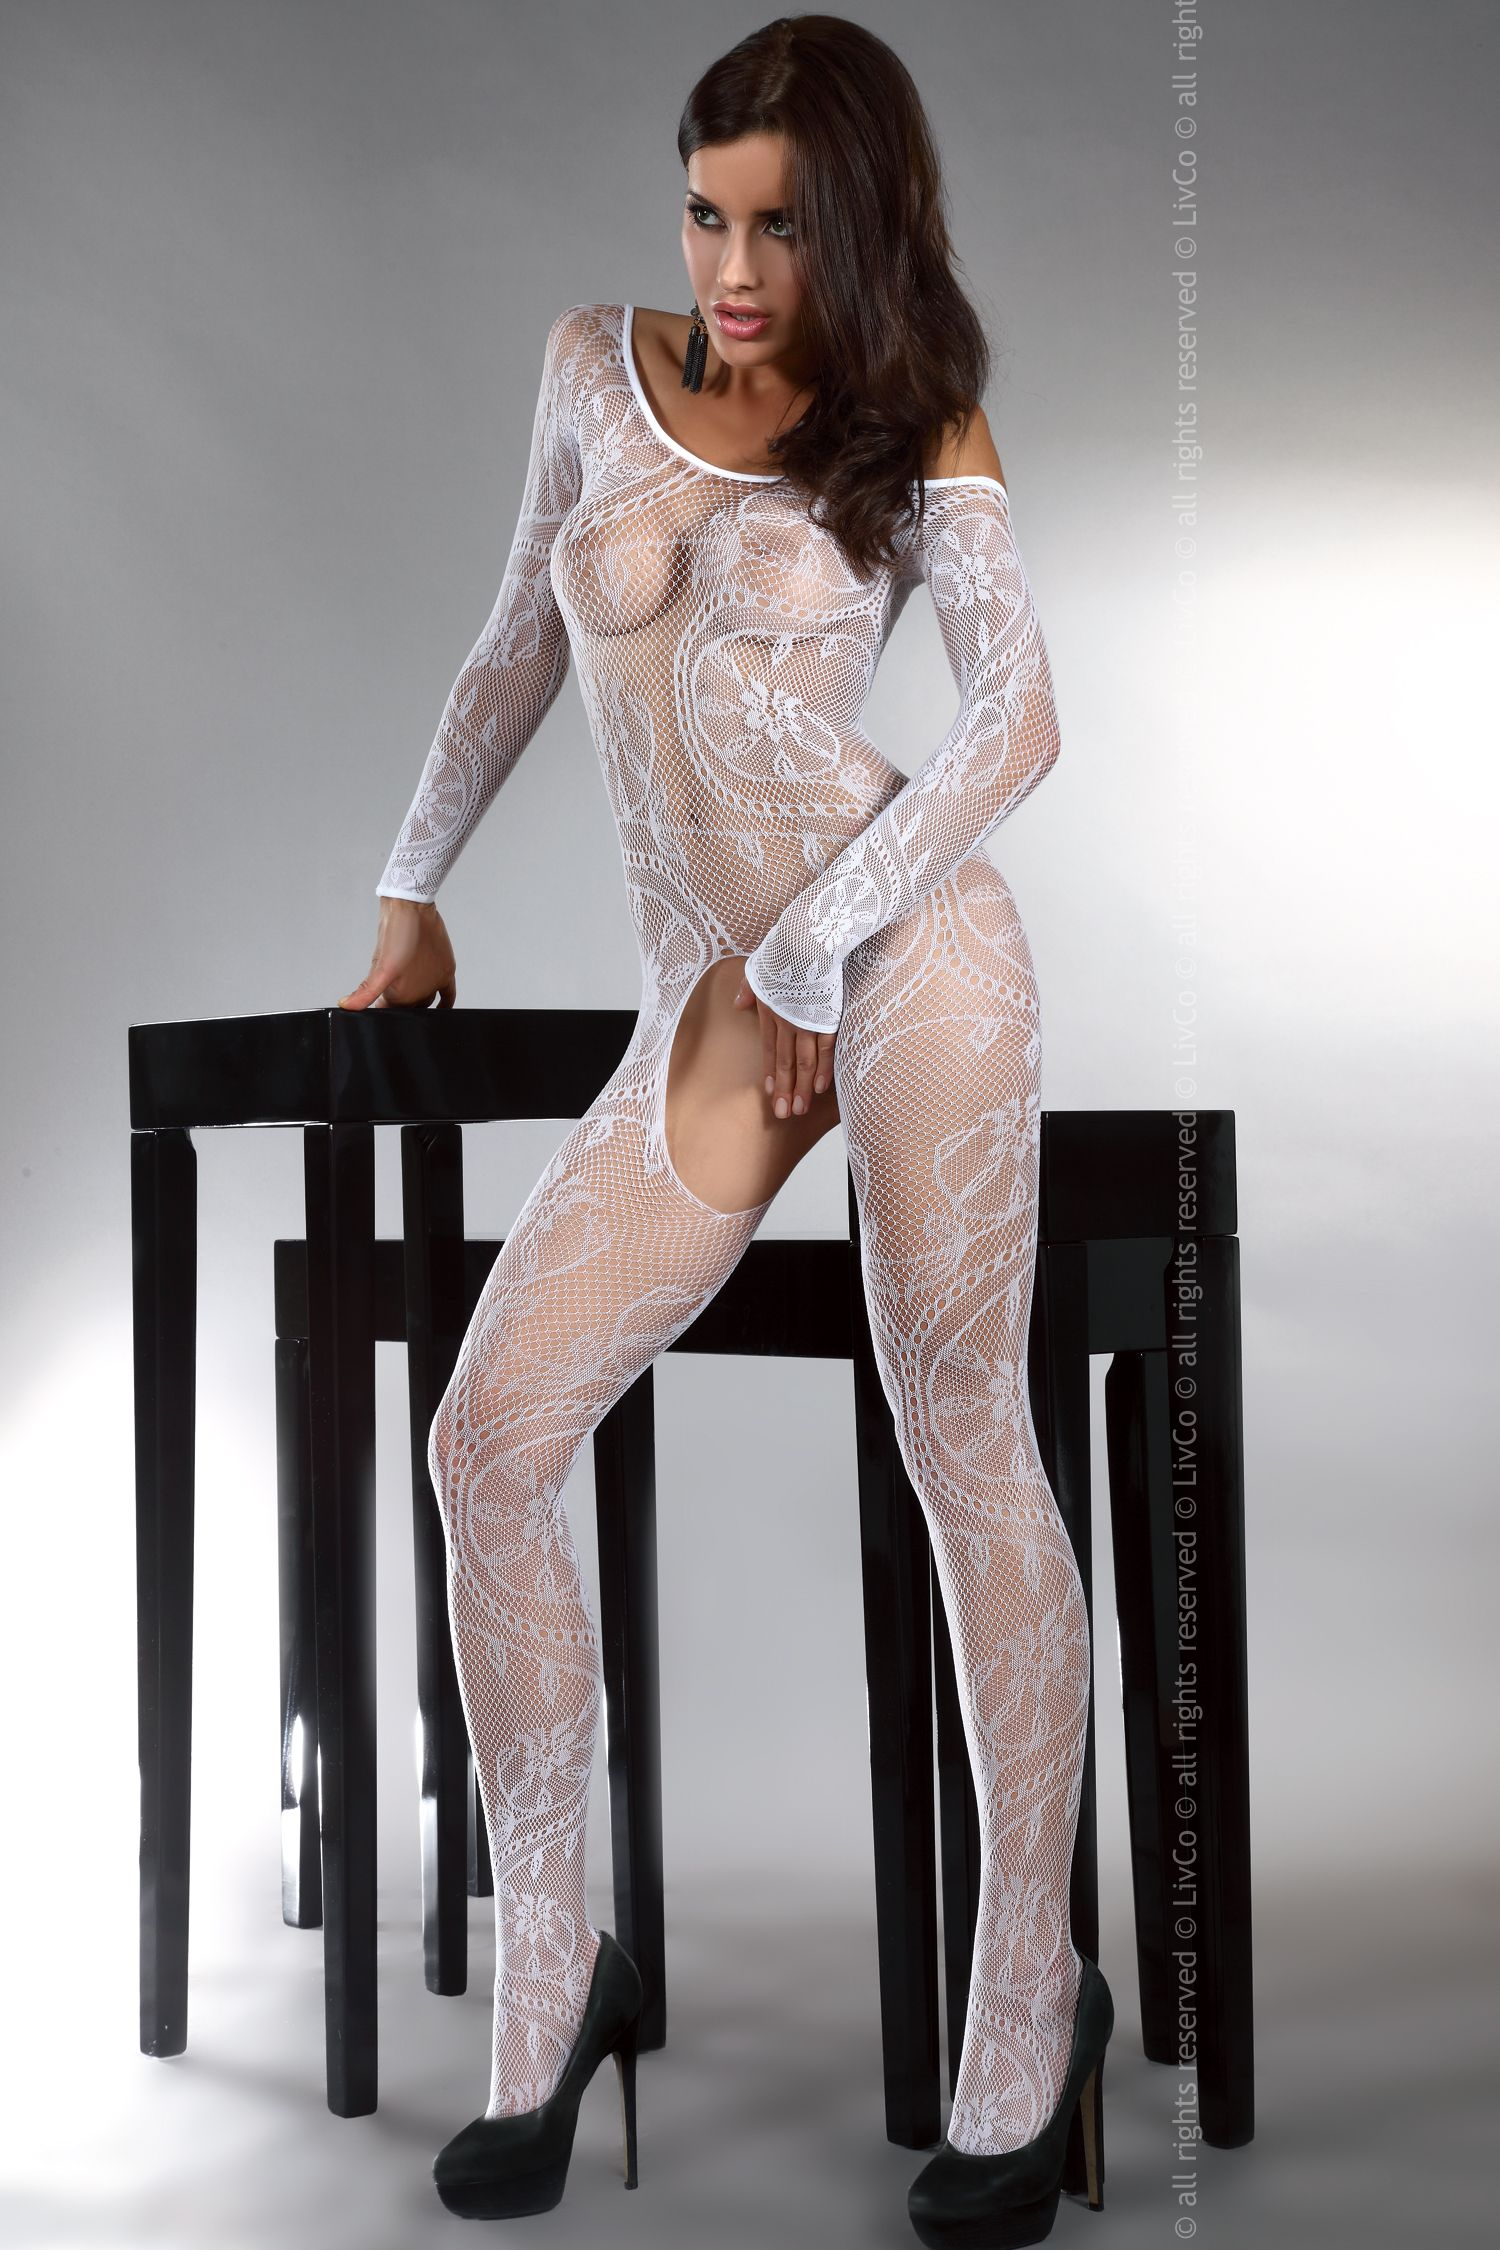 Body stocking Abra White